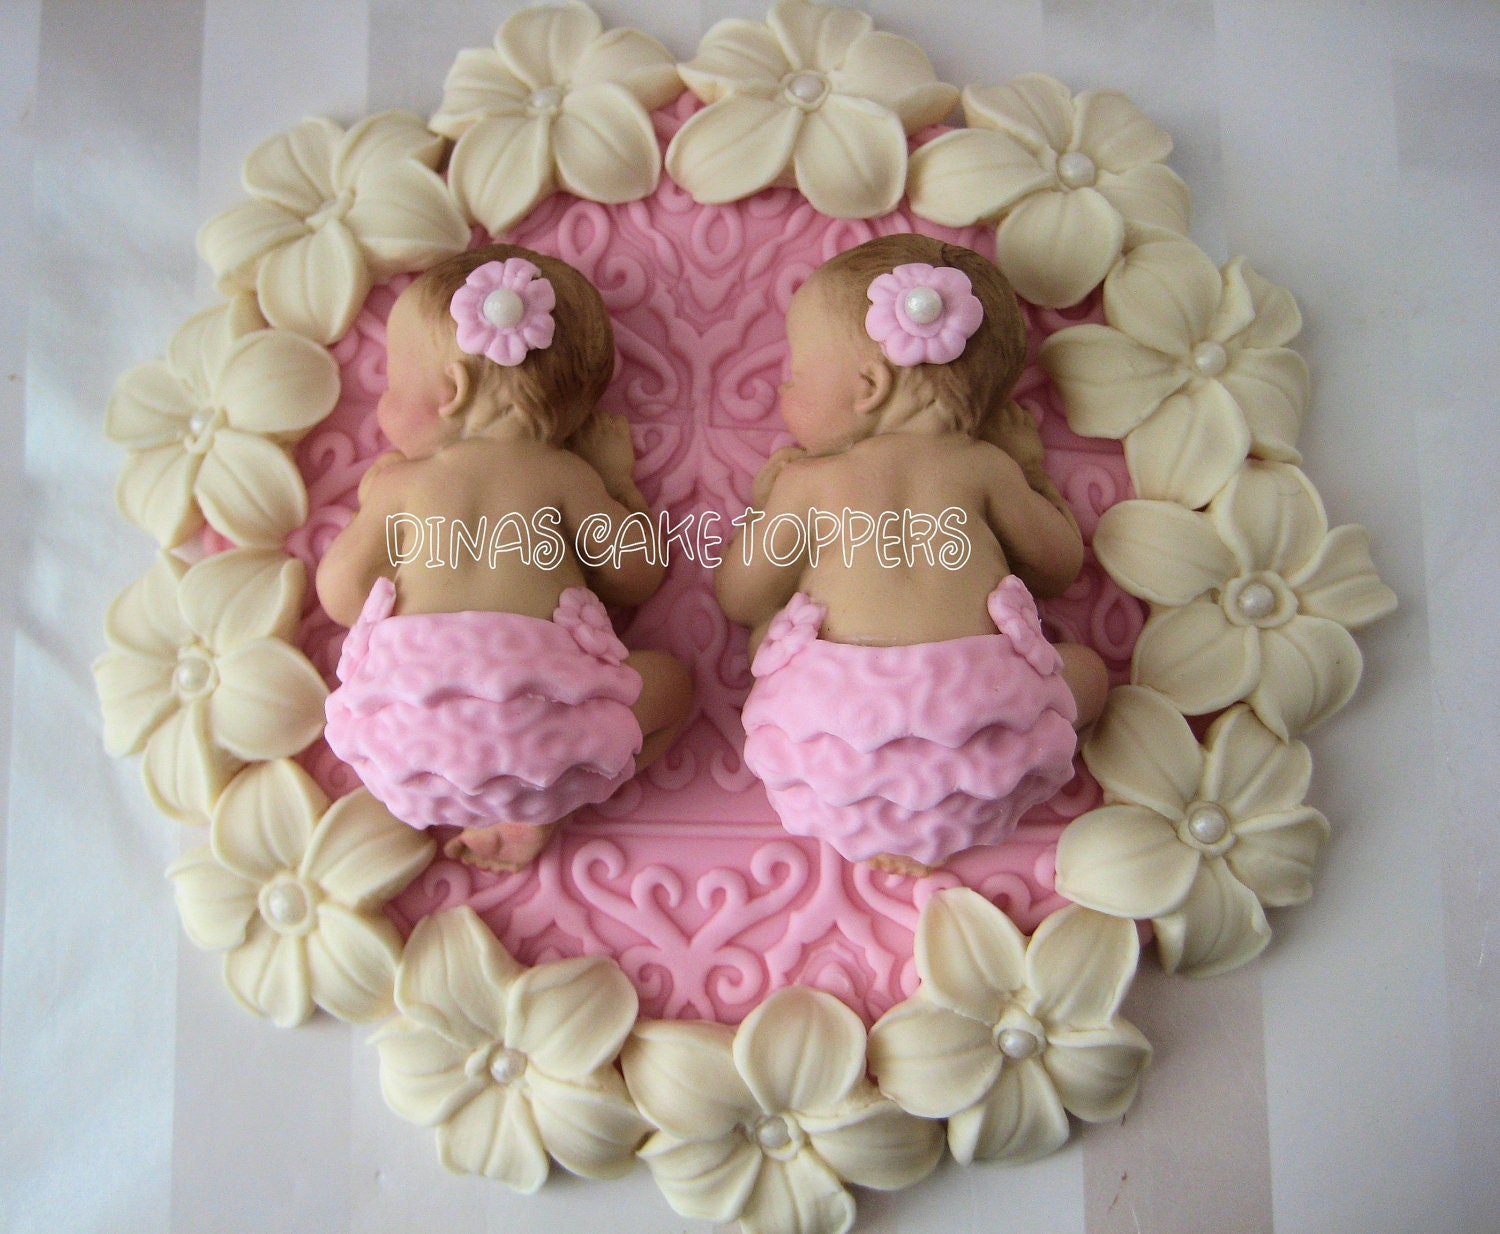 Baby shower decorations for twins best baby decoration for Baby shower decoration ideas for twin girls